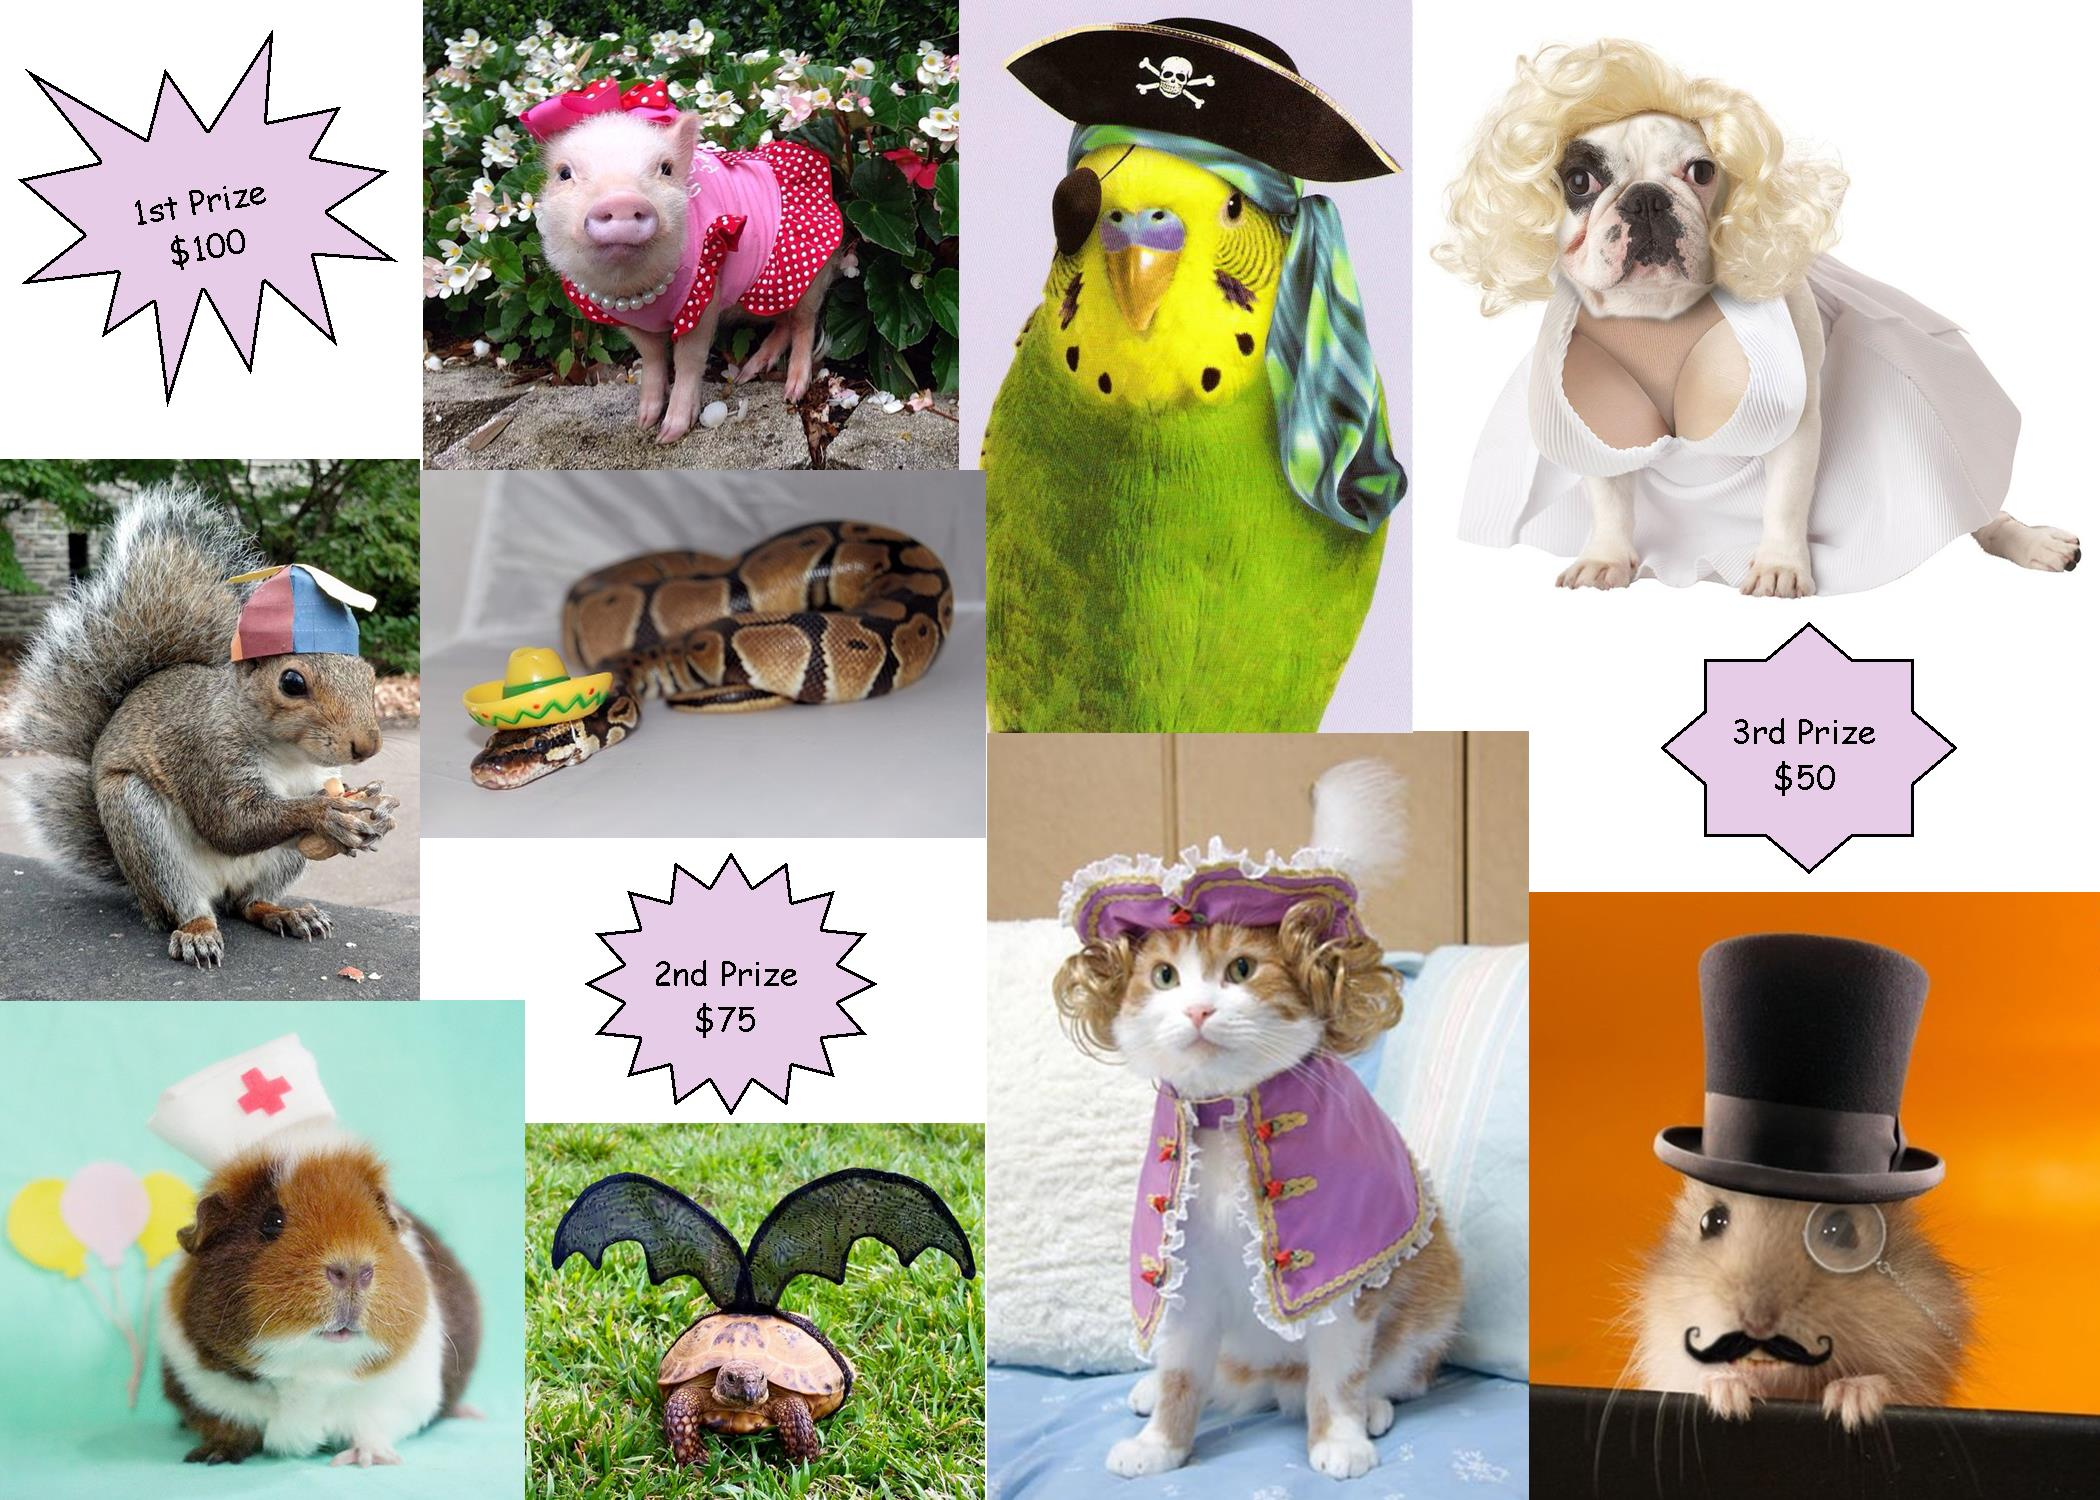 Pet_Costume_Graphic.jpg